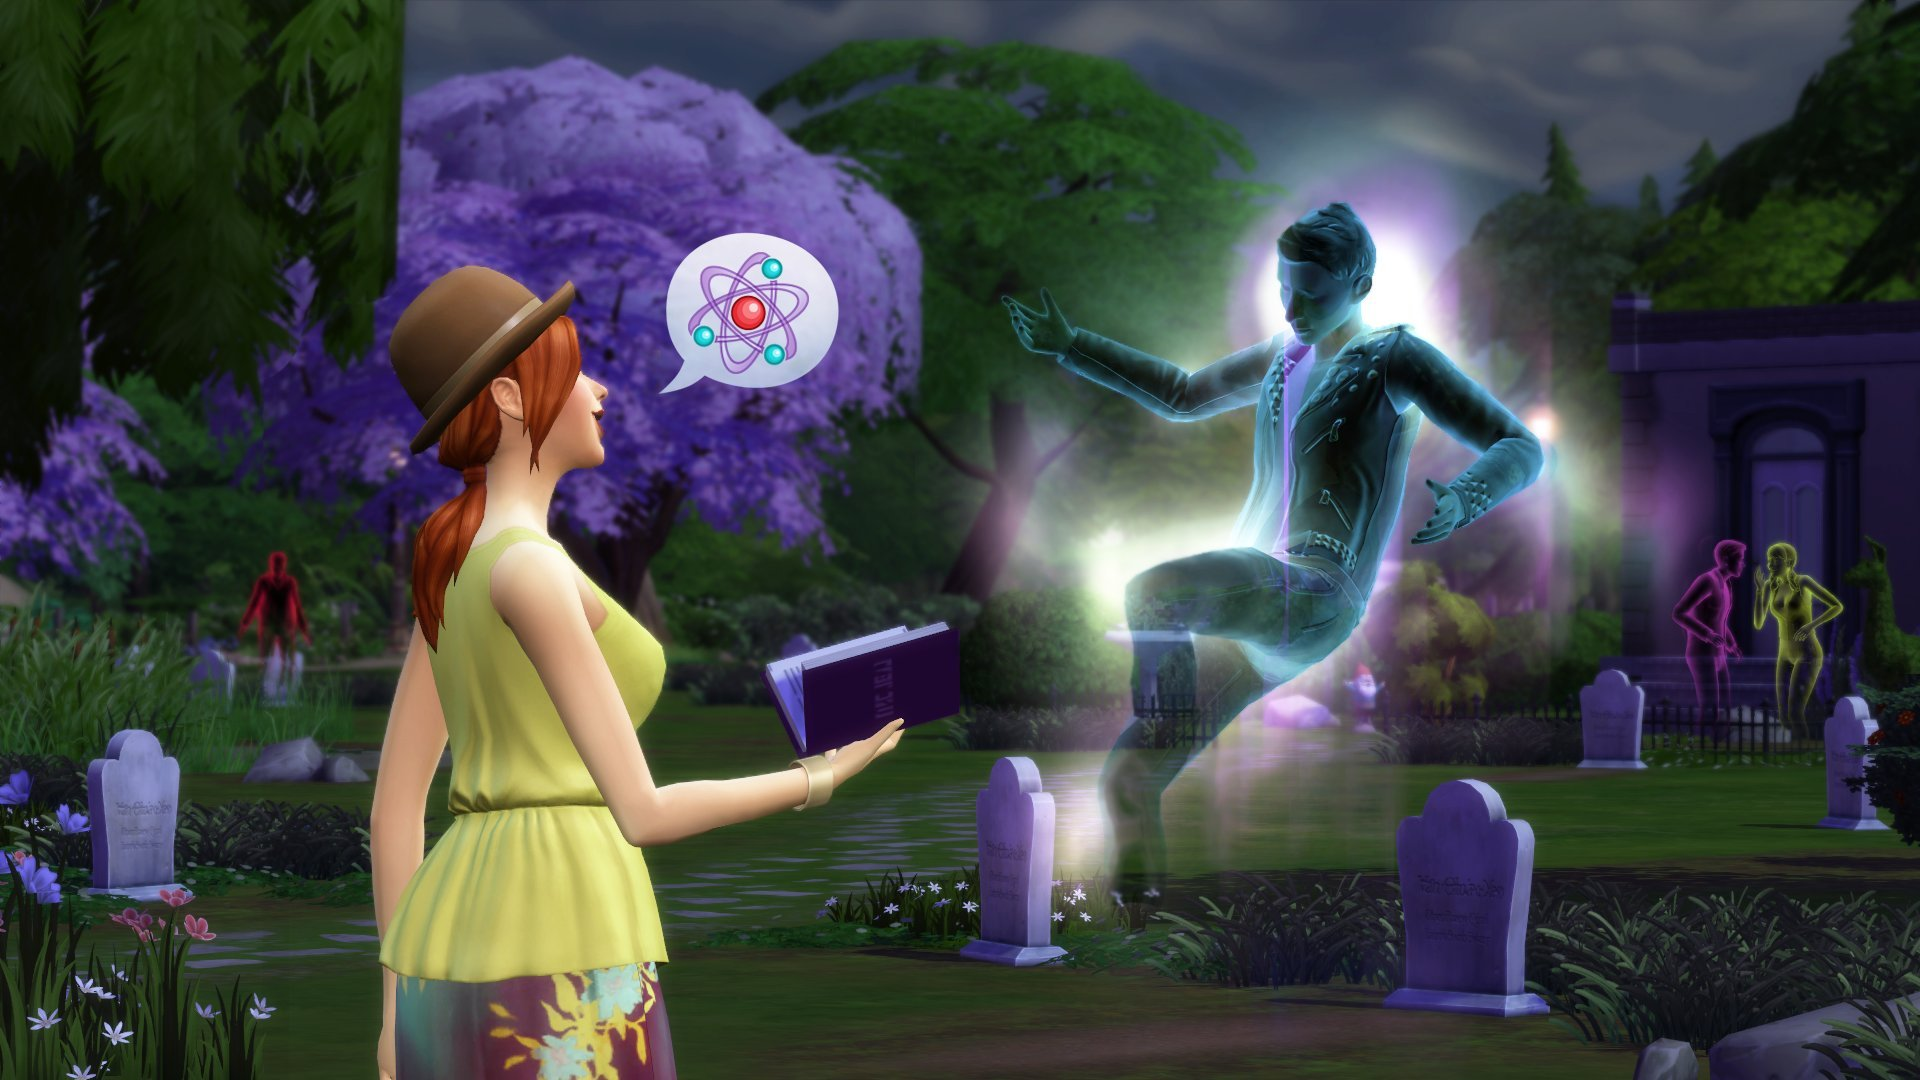 The Sims 4 [Online Game Code] by Electronic Arts (Image #2)